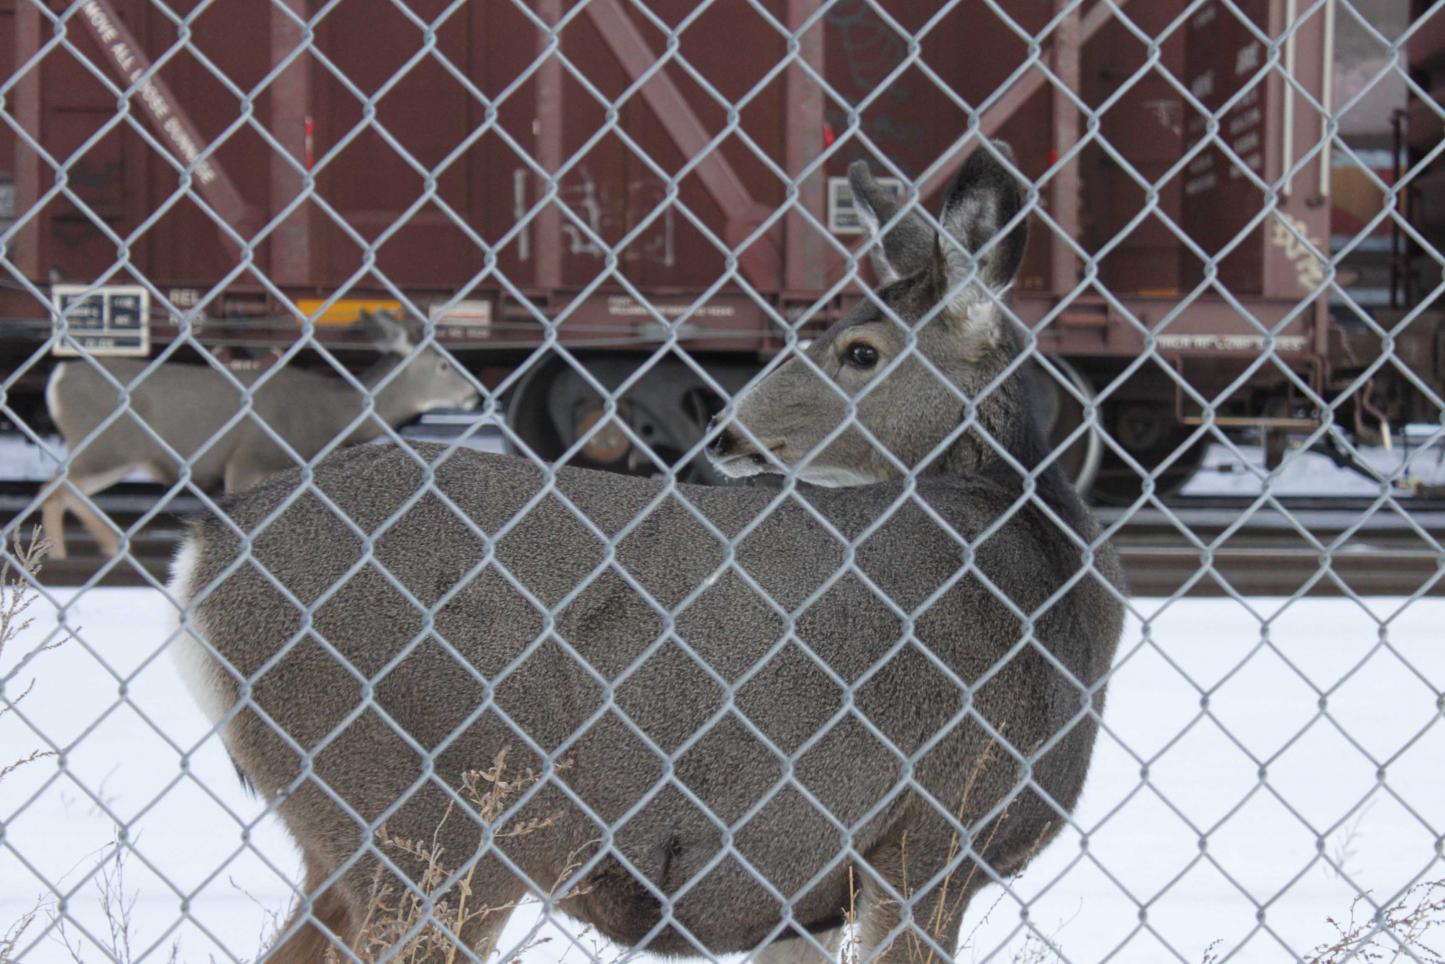 Deer behind Fence.jpg